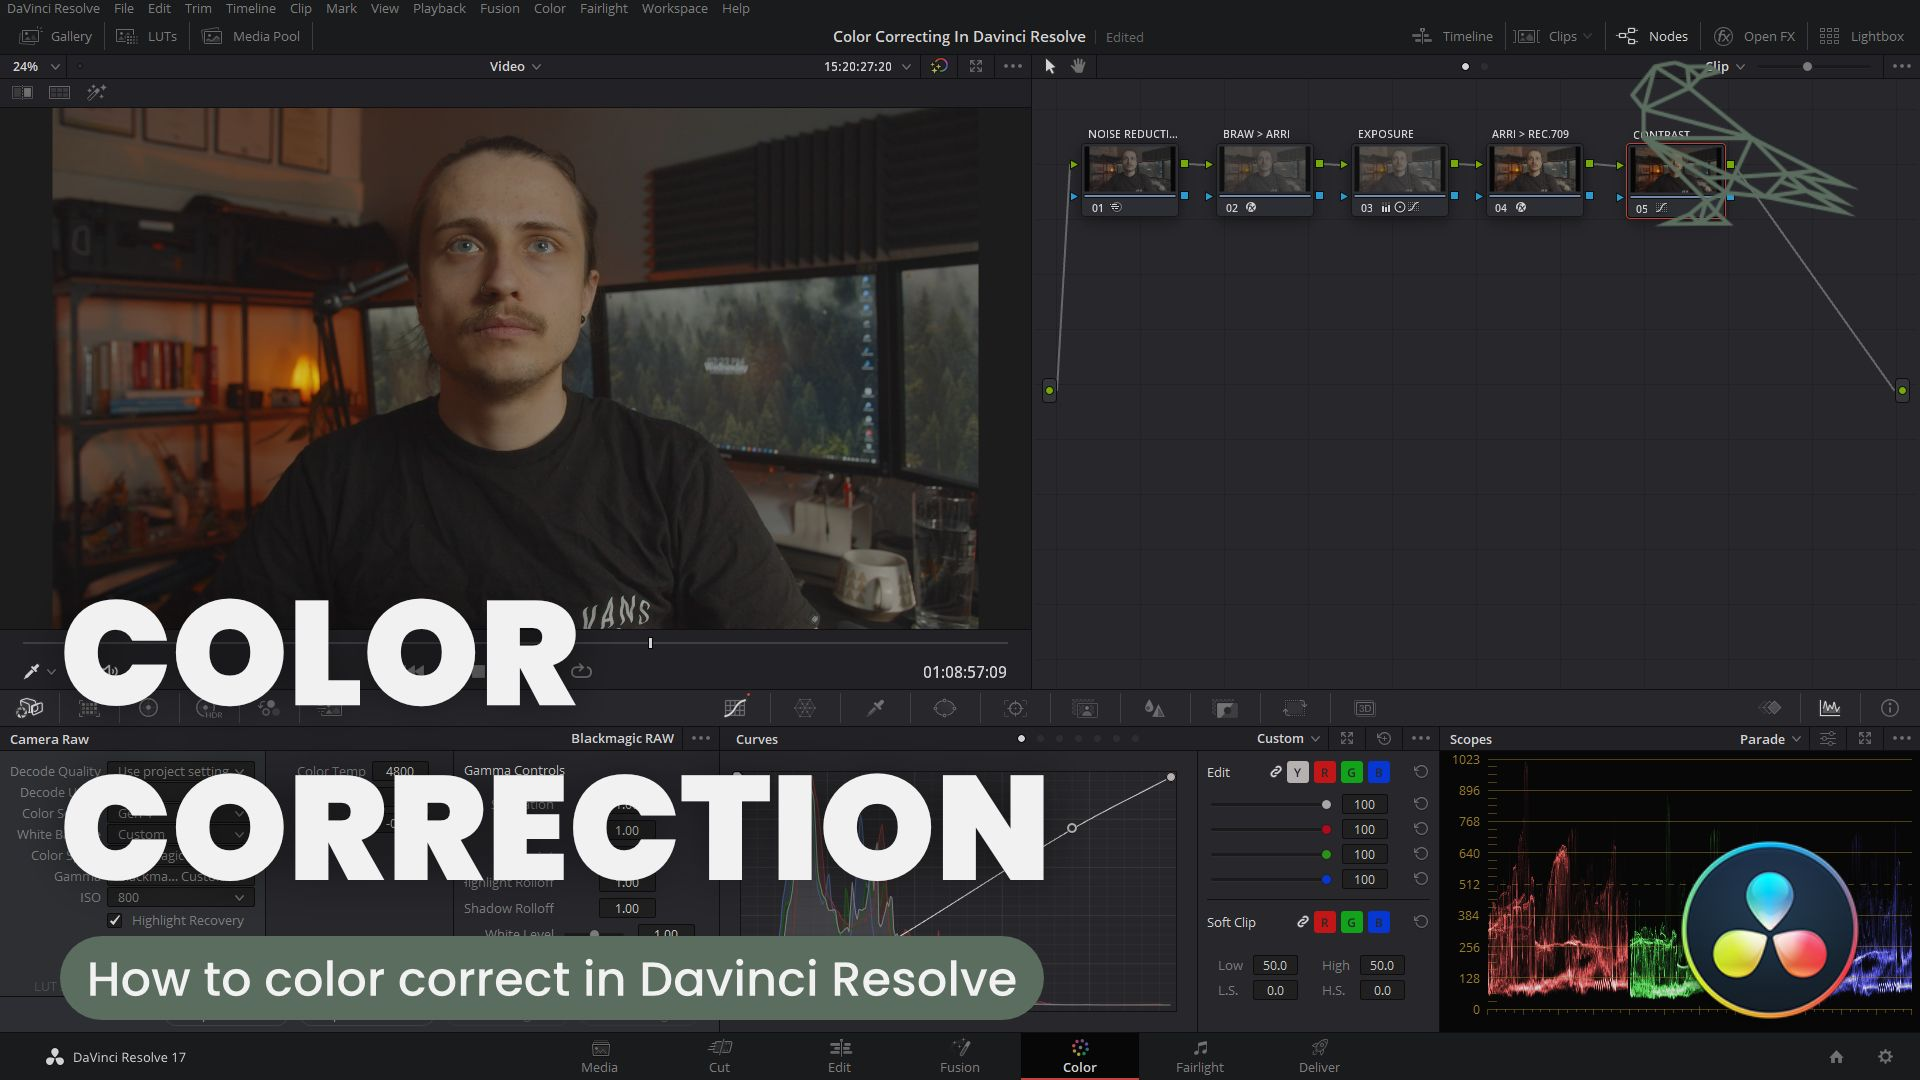 How To Color Correct In Davinci Resolve